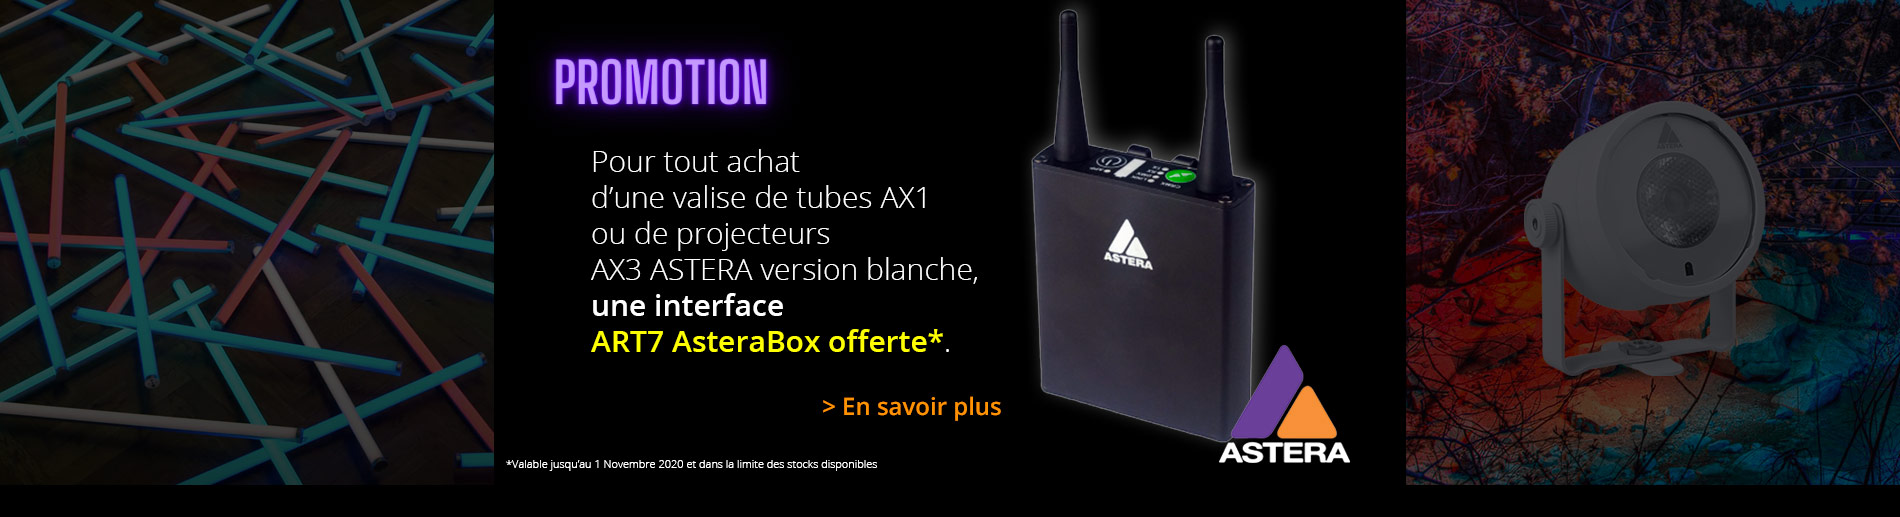 Promotion Astera ART7 offerte